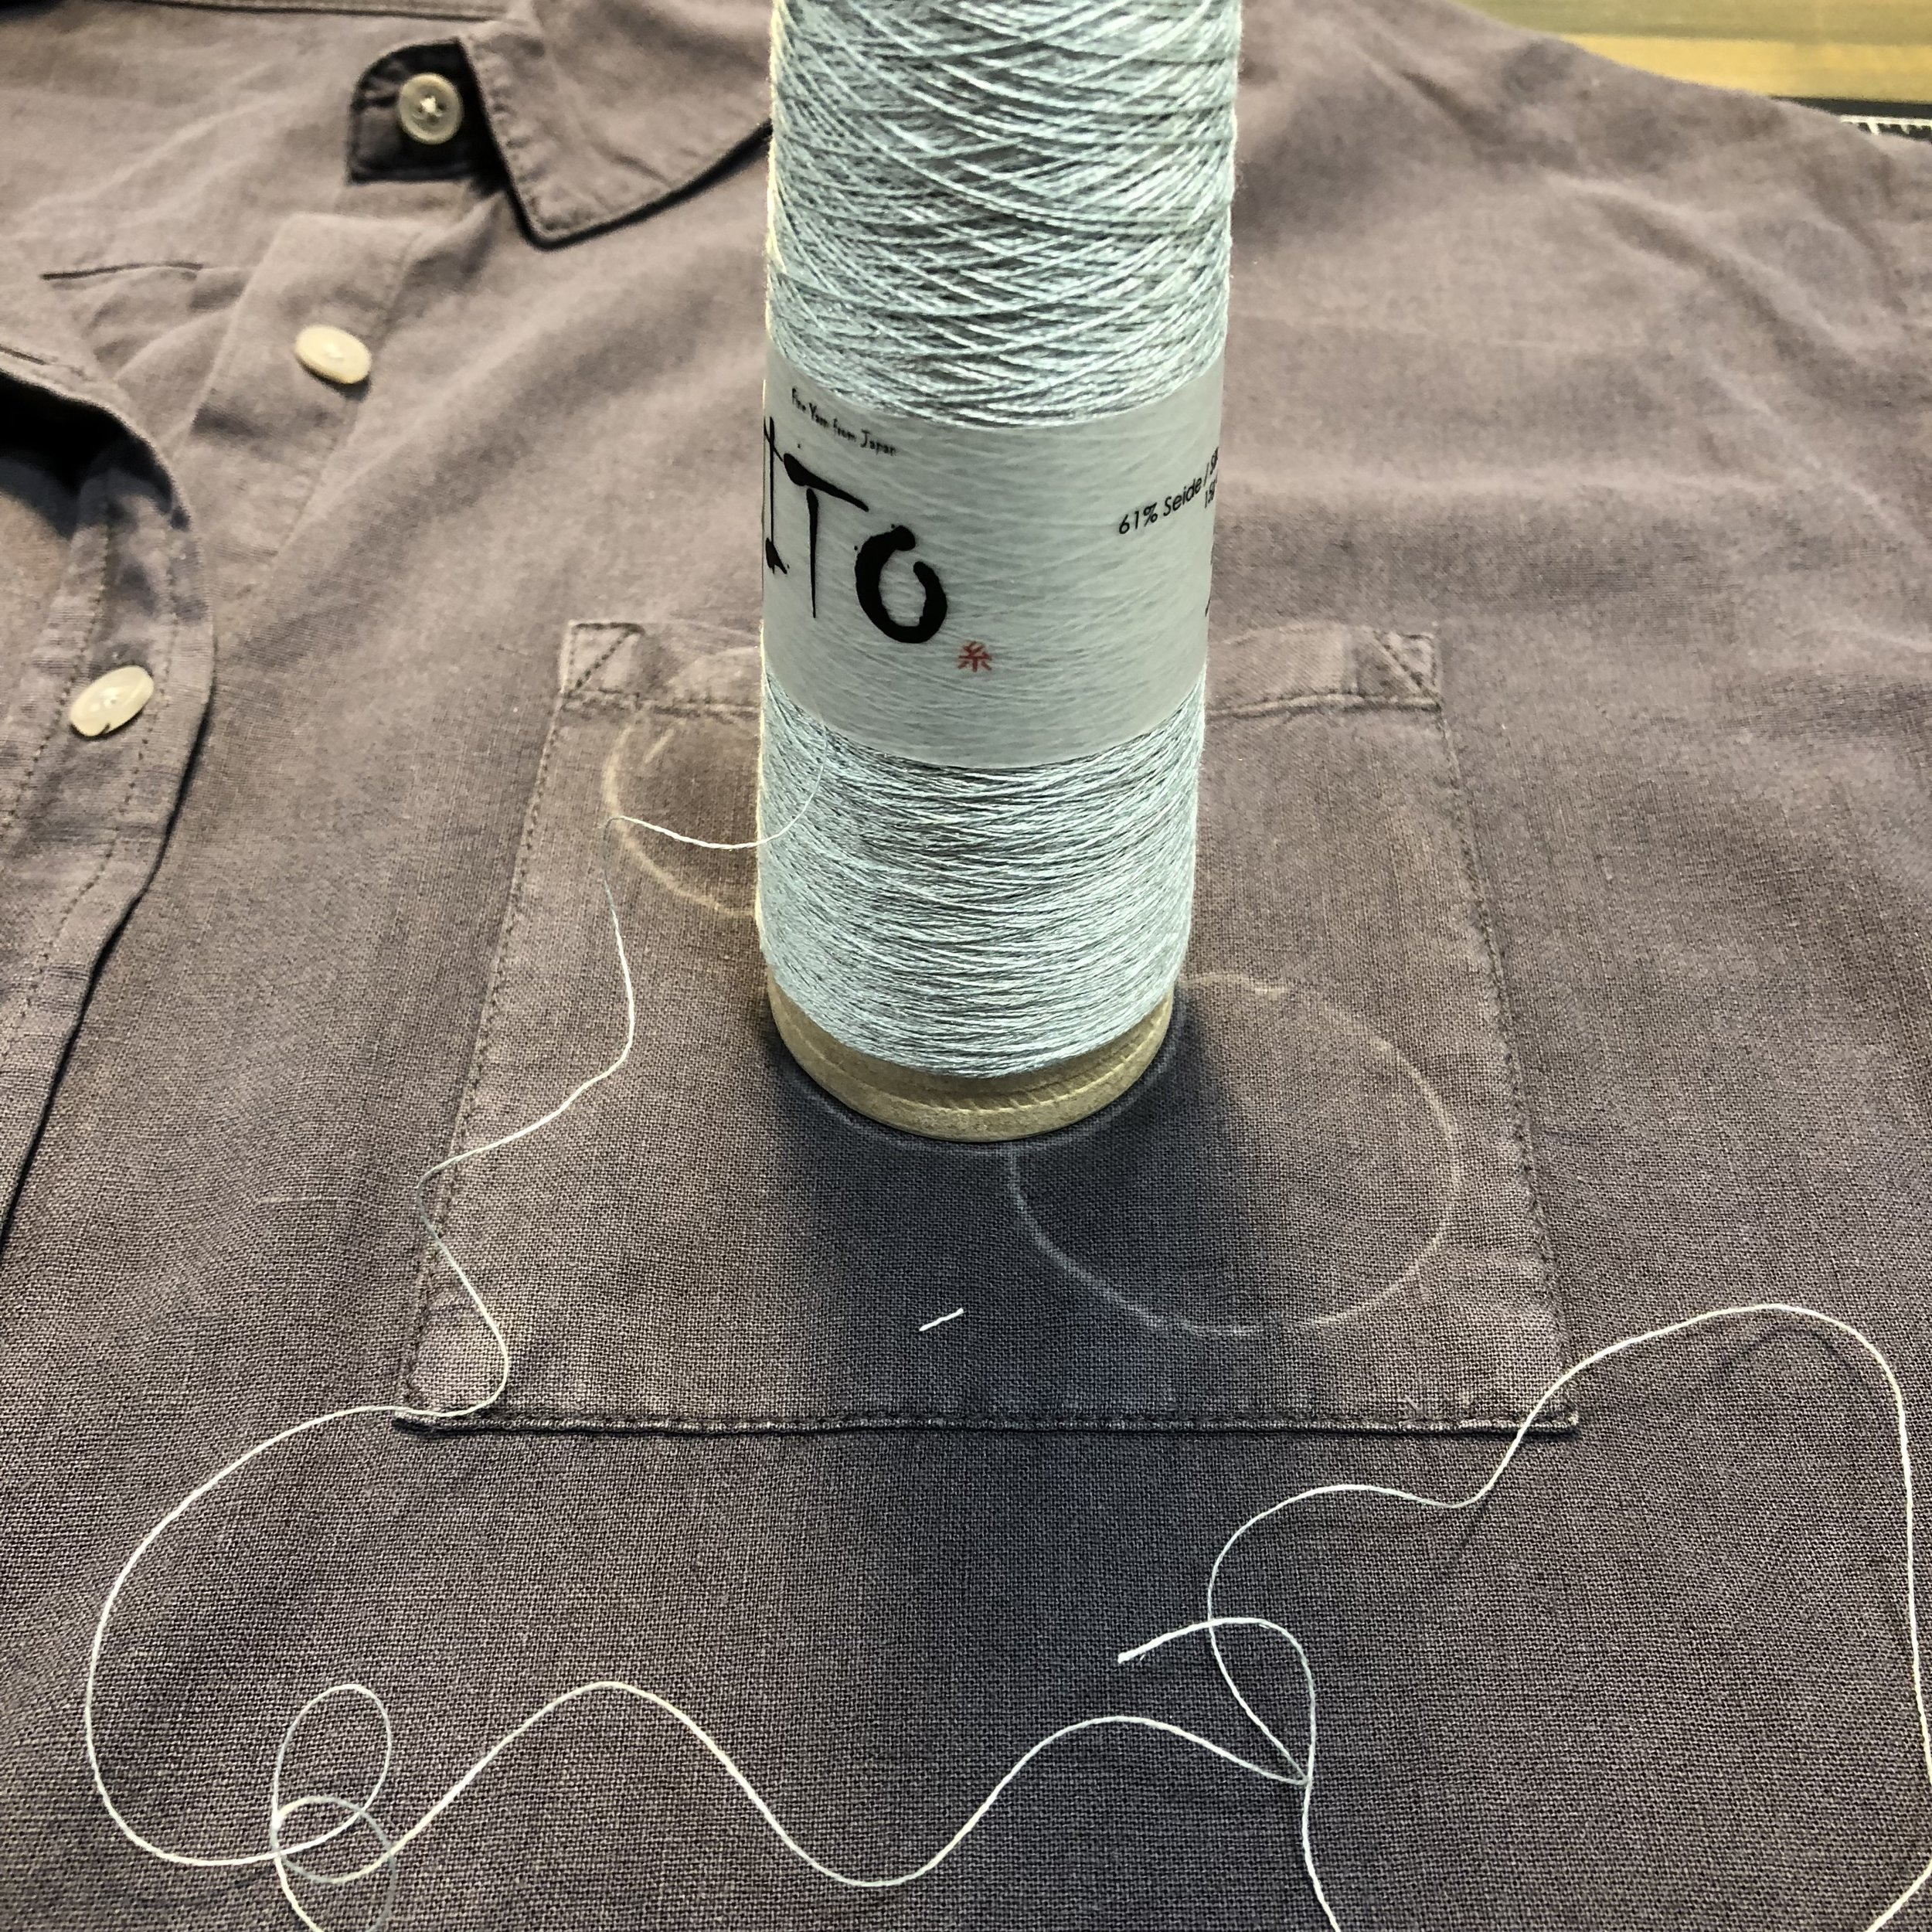 Stitching with silk wrapped stainless steel